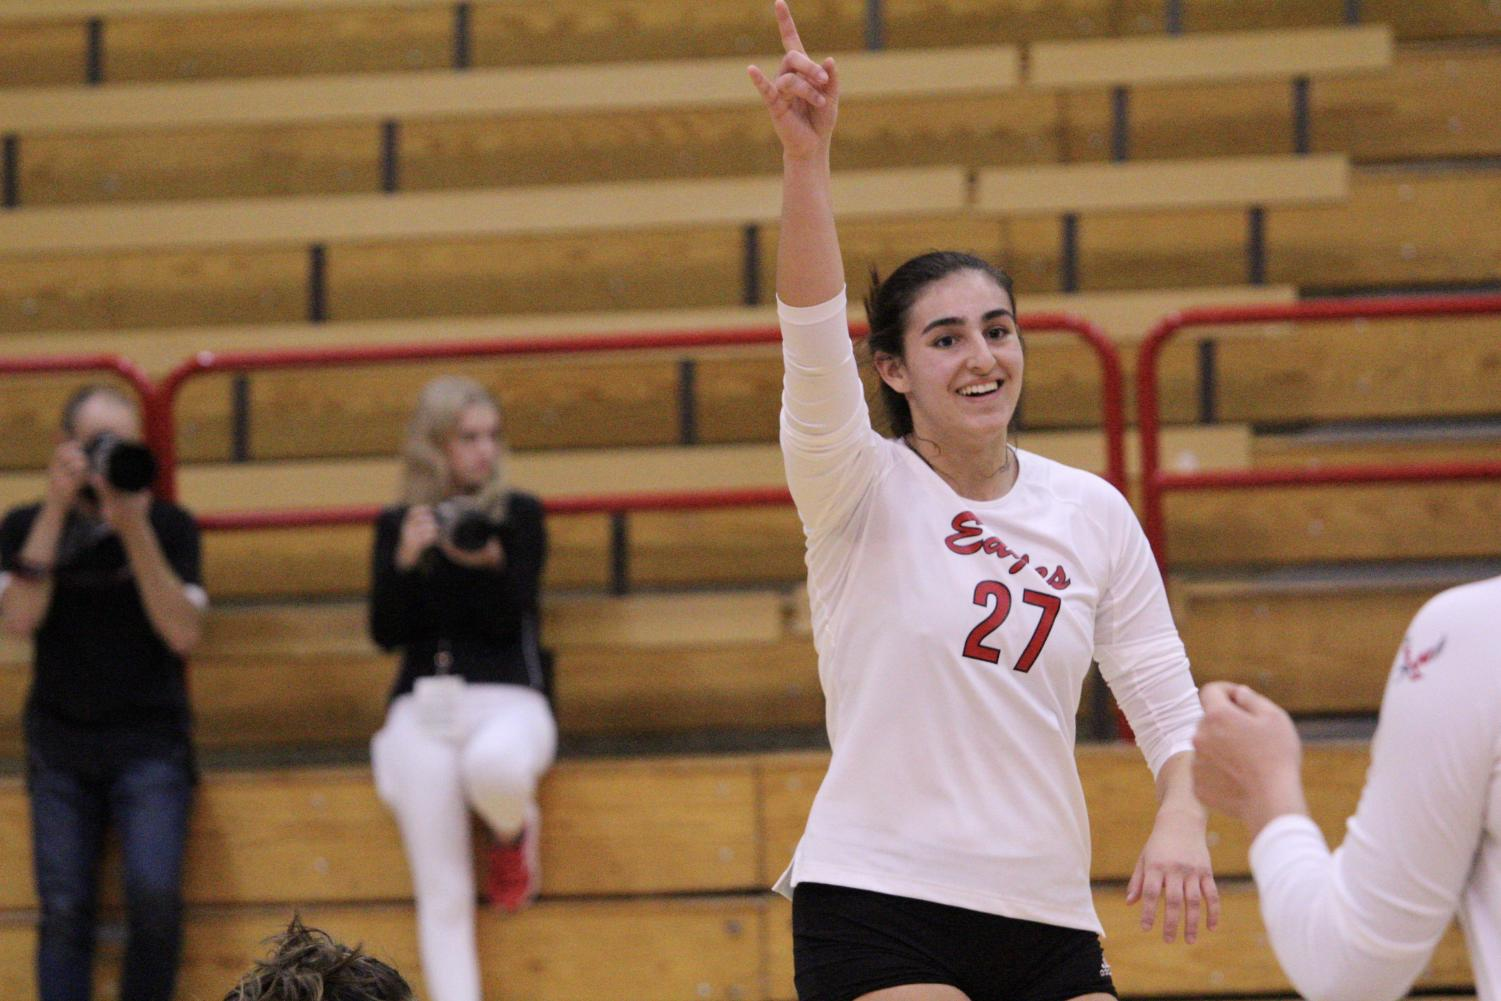 Freshman Nicoletta Capizzi raises her hand triumphantly. EWU broke a 14-match losing streak by beating the Southern Utah Thunderbirds (4-3, 11-8) in a back-and-forth five set match.